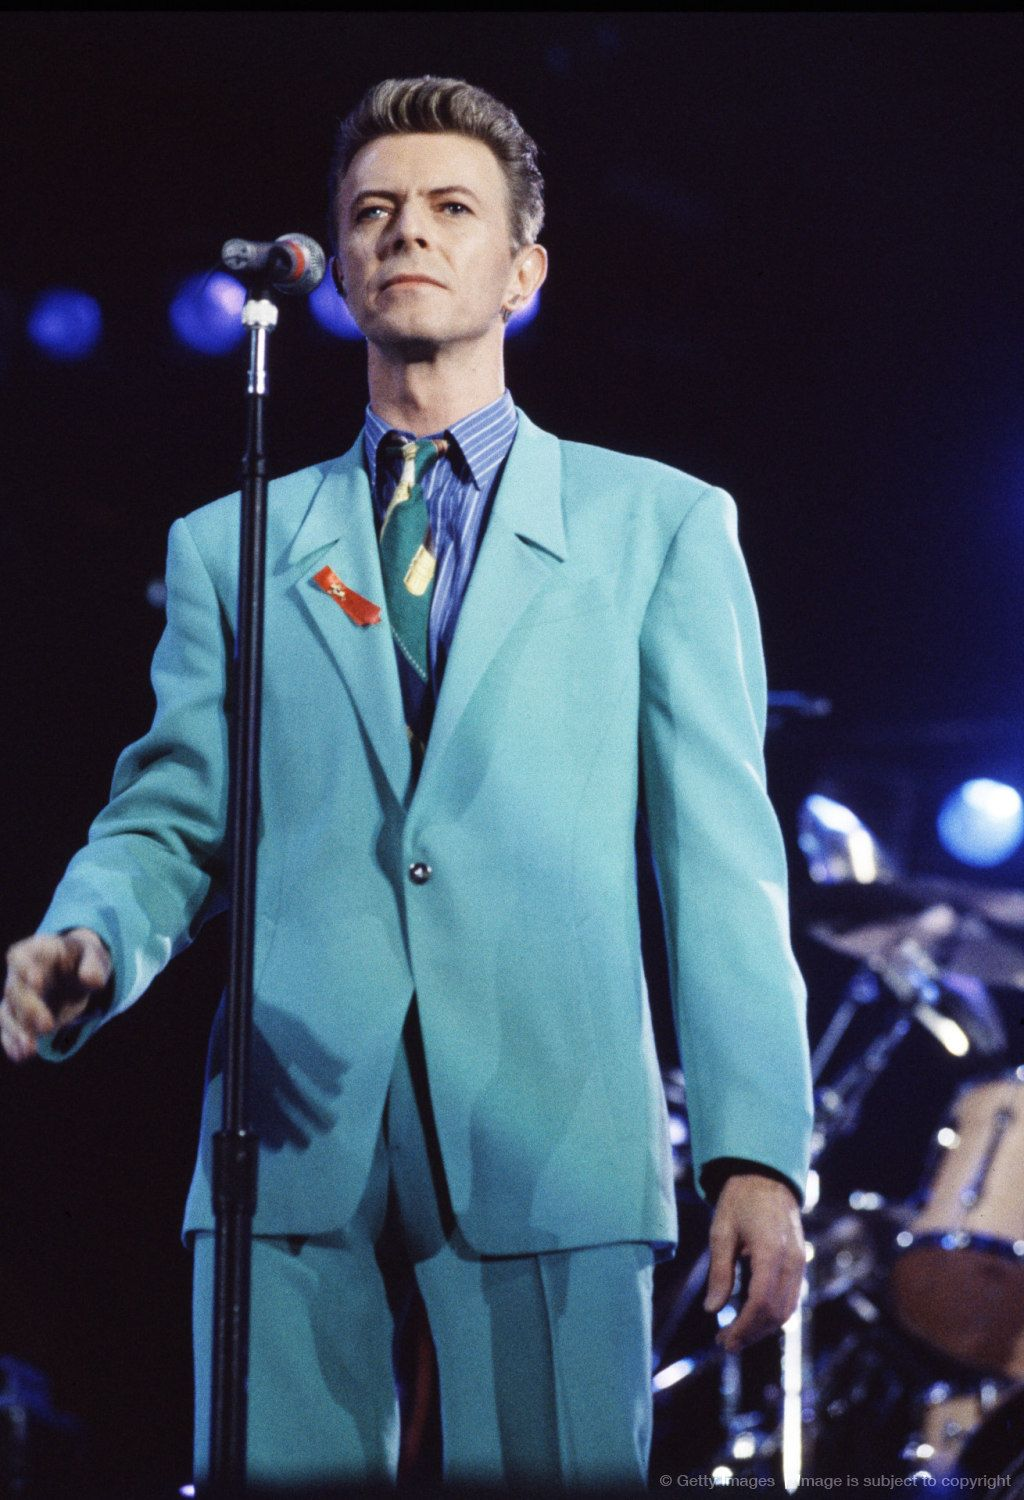 Bowie at the Freddy Mercury tribute concert